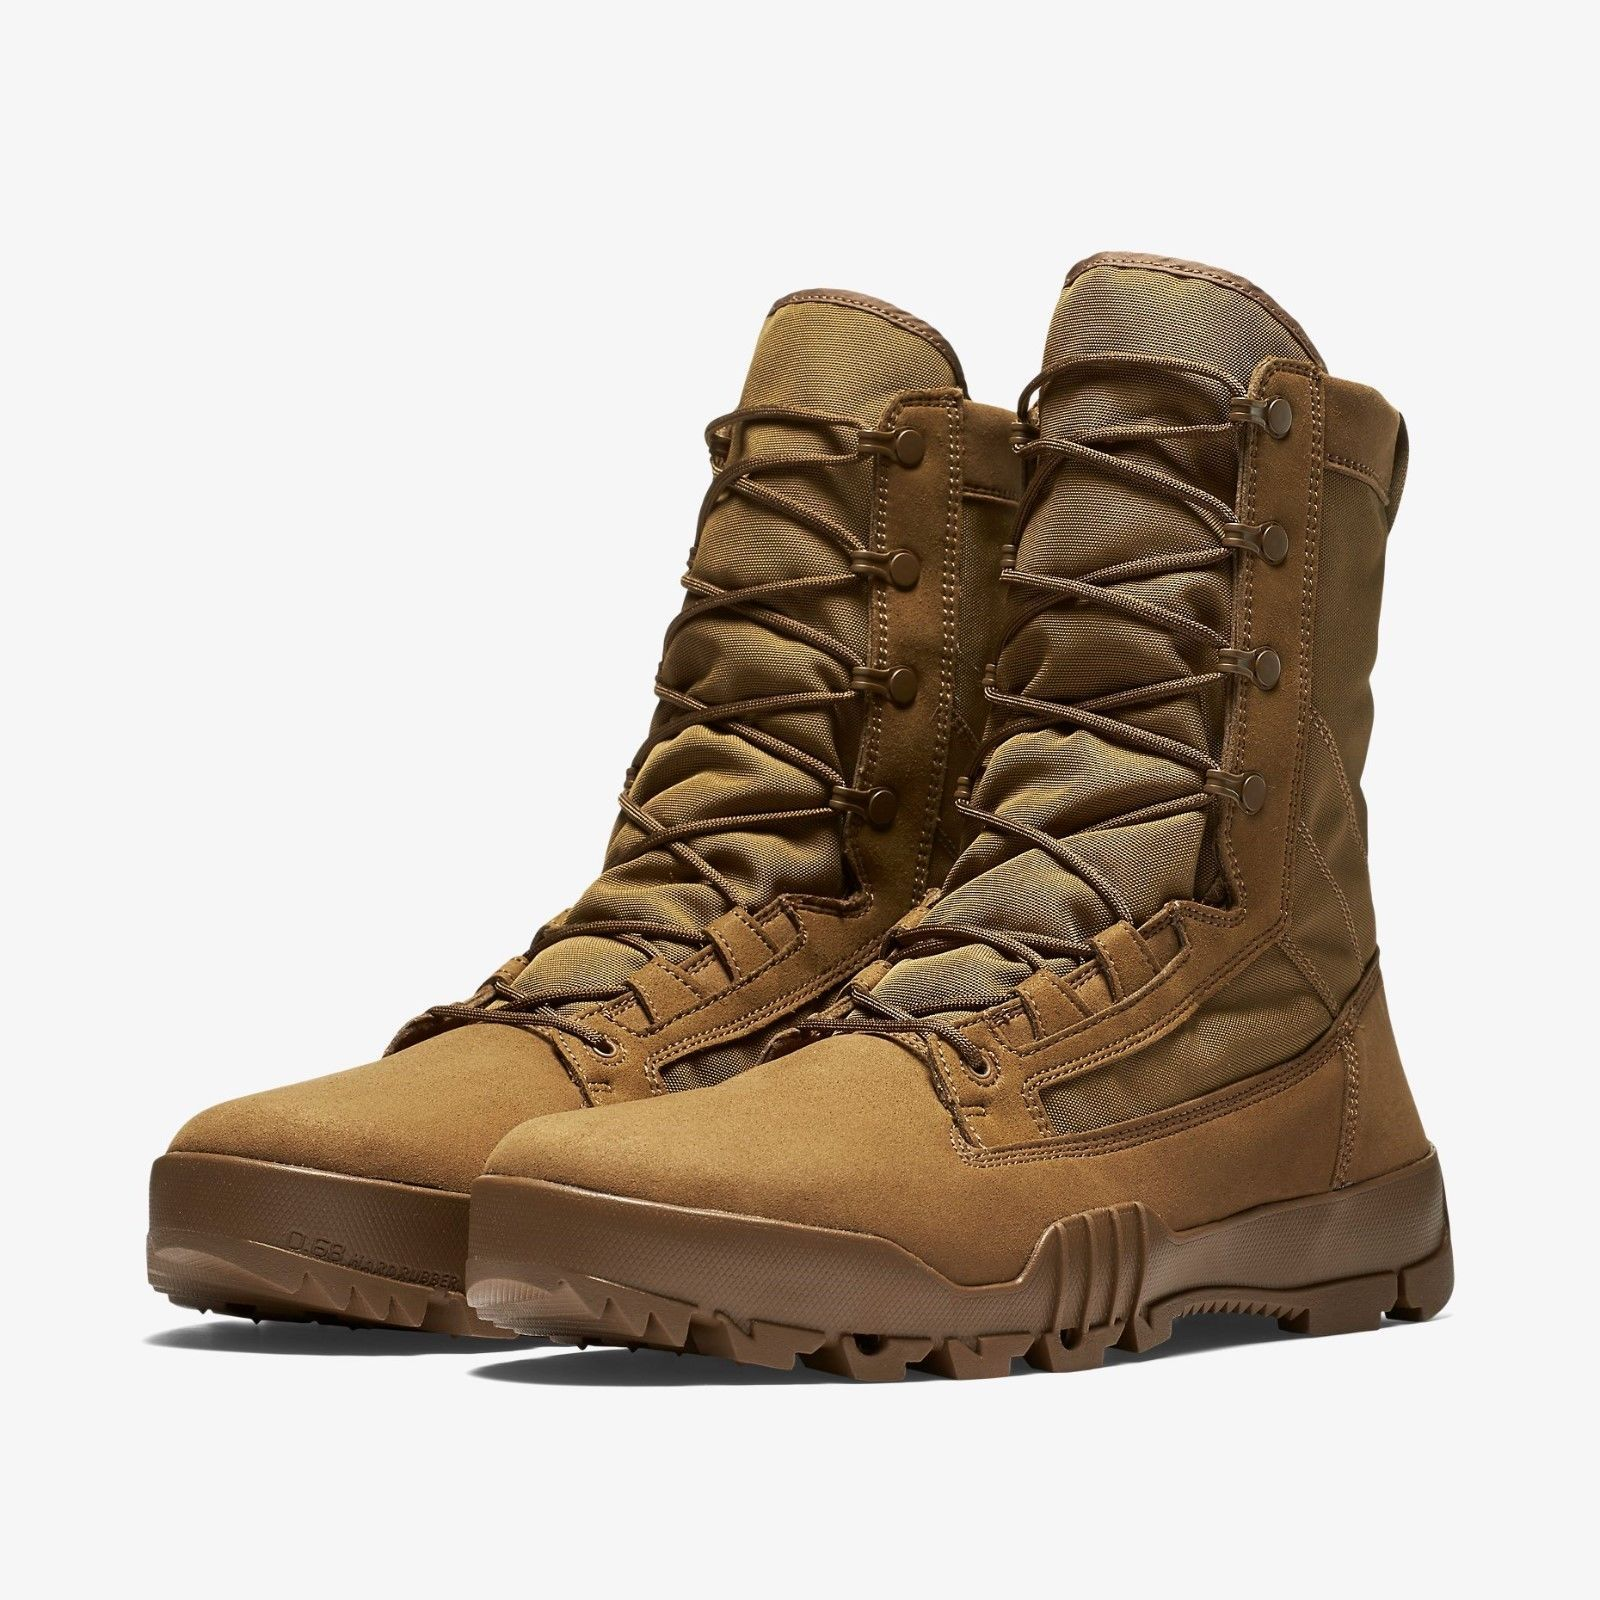 e7831d884a83 Nike SFB Special Field Jungle Leather Military Boots Coyote Brown Mens sz  12.5